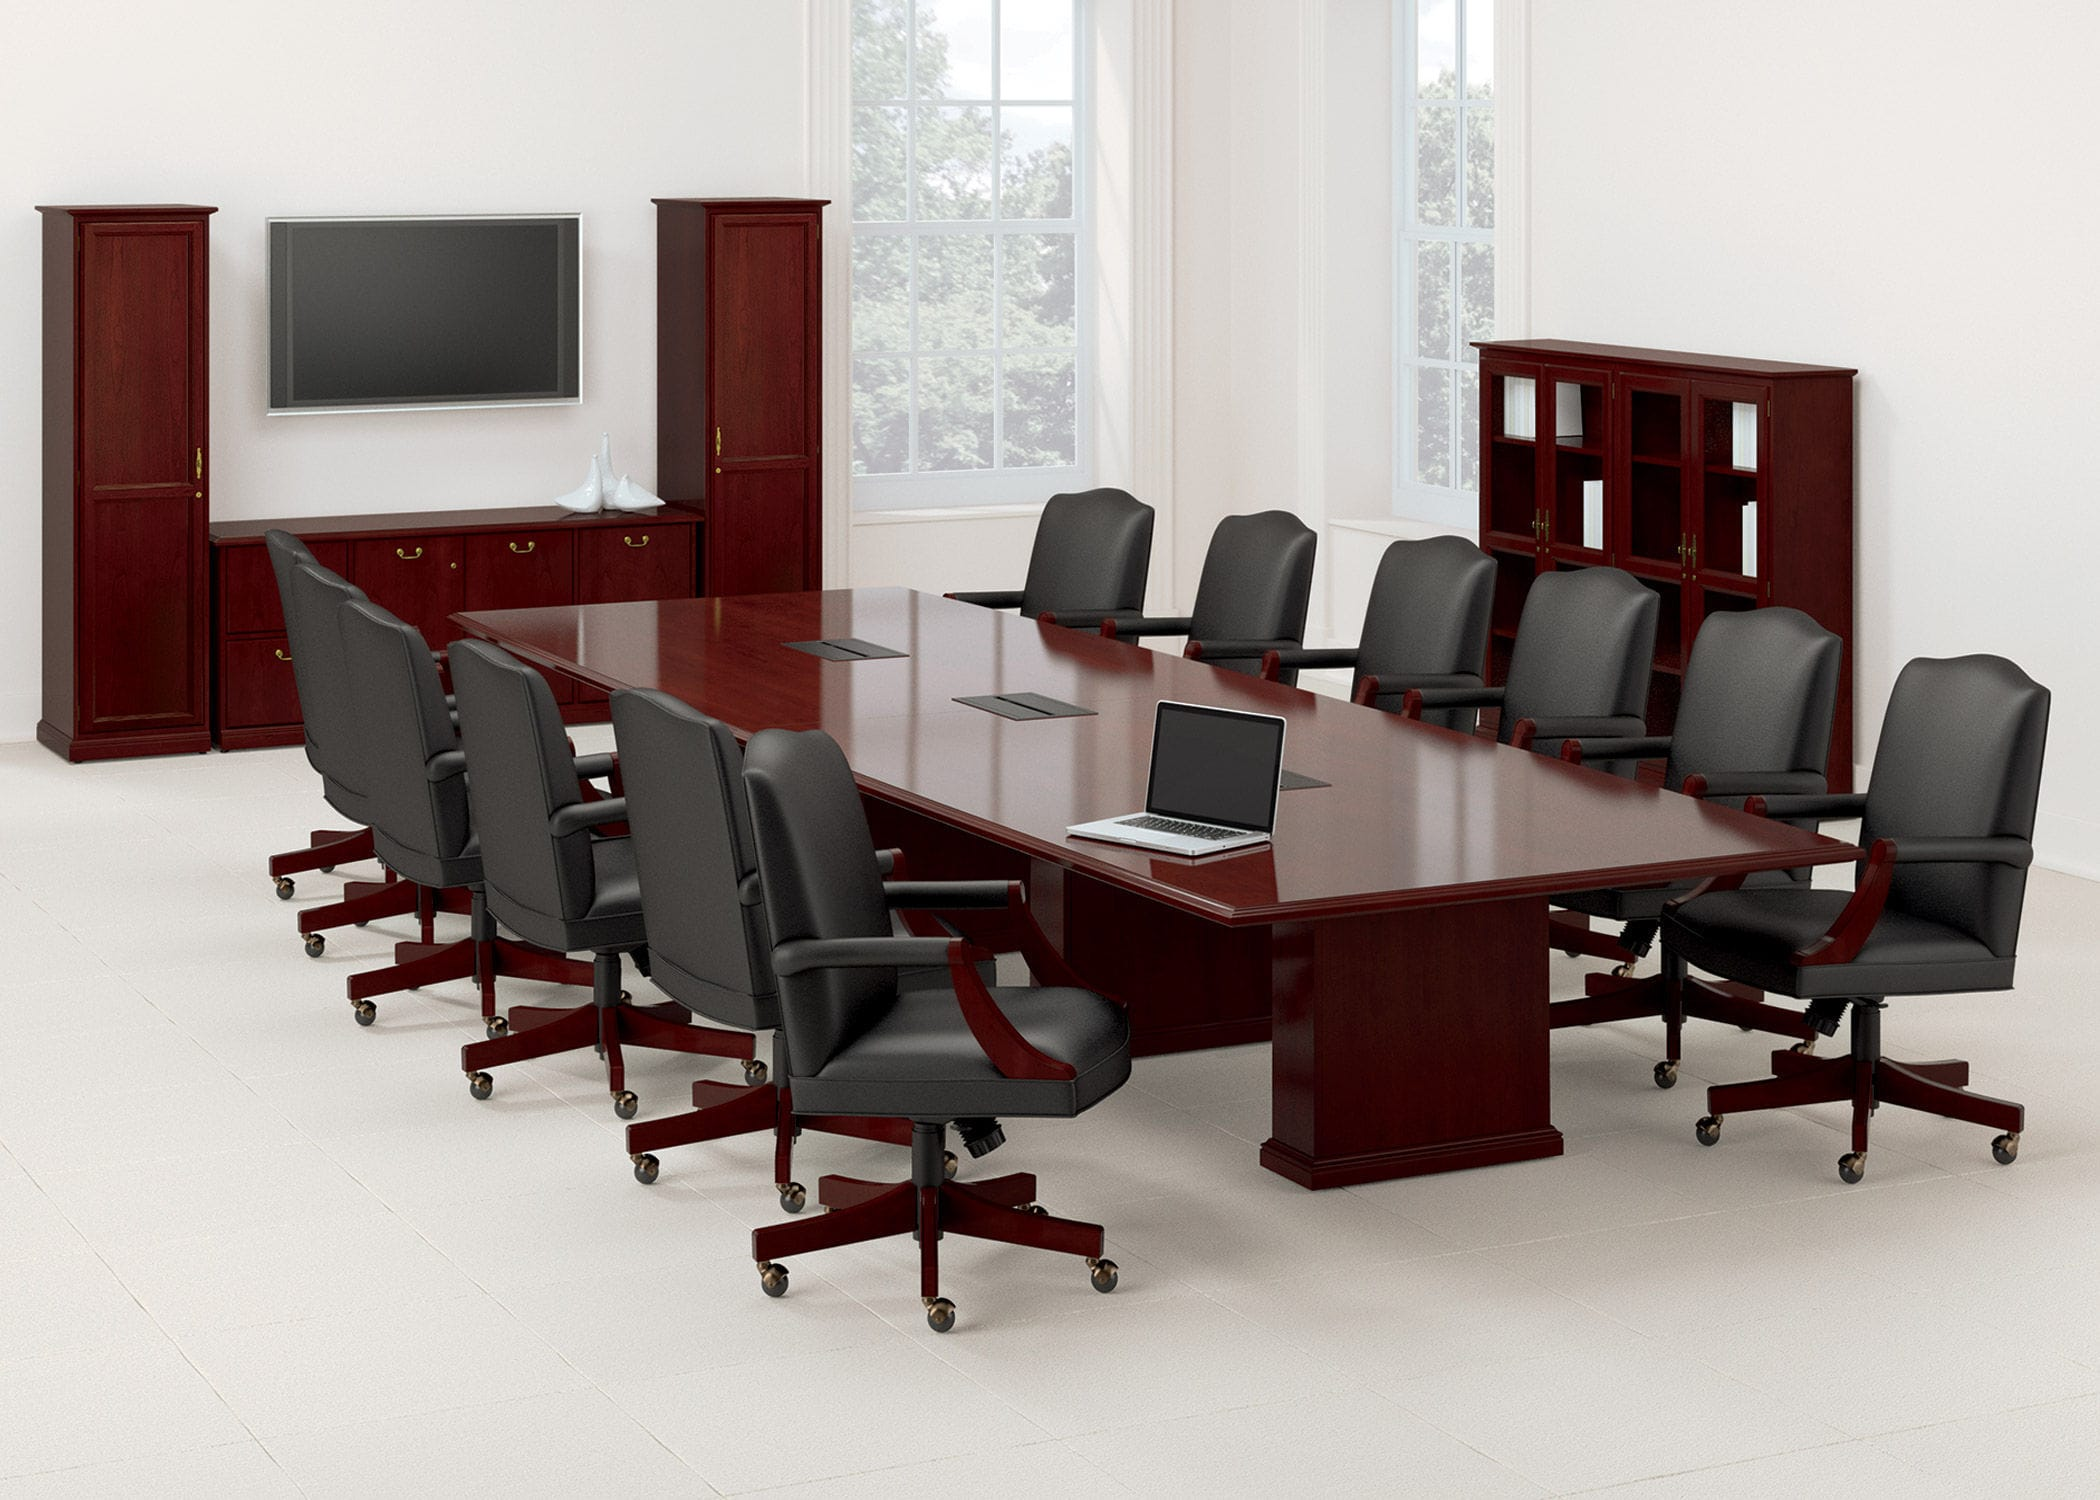 Meeting Room Table Office Rectangular Barrington National - Rectangular conference room table